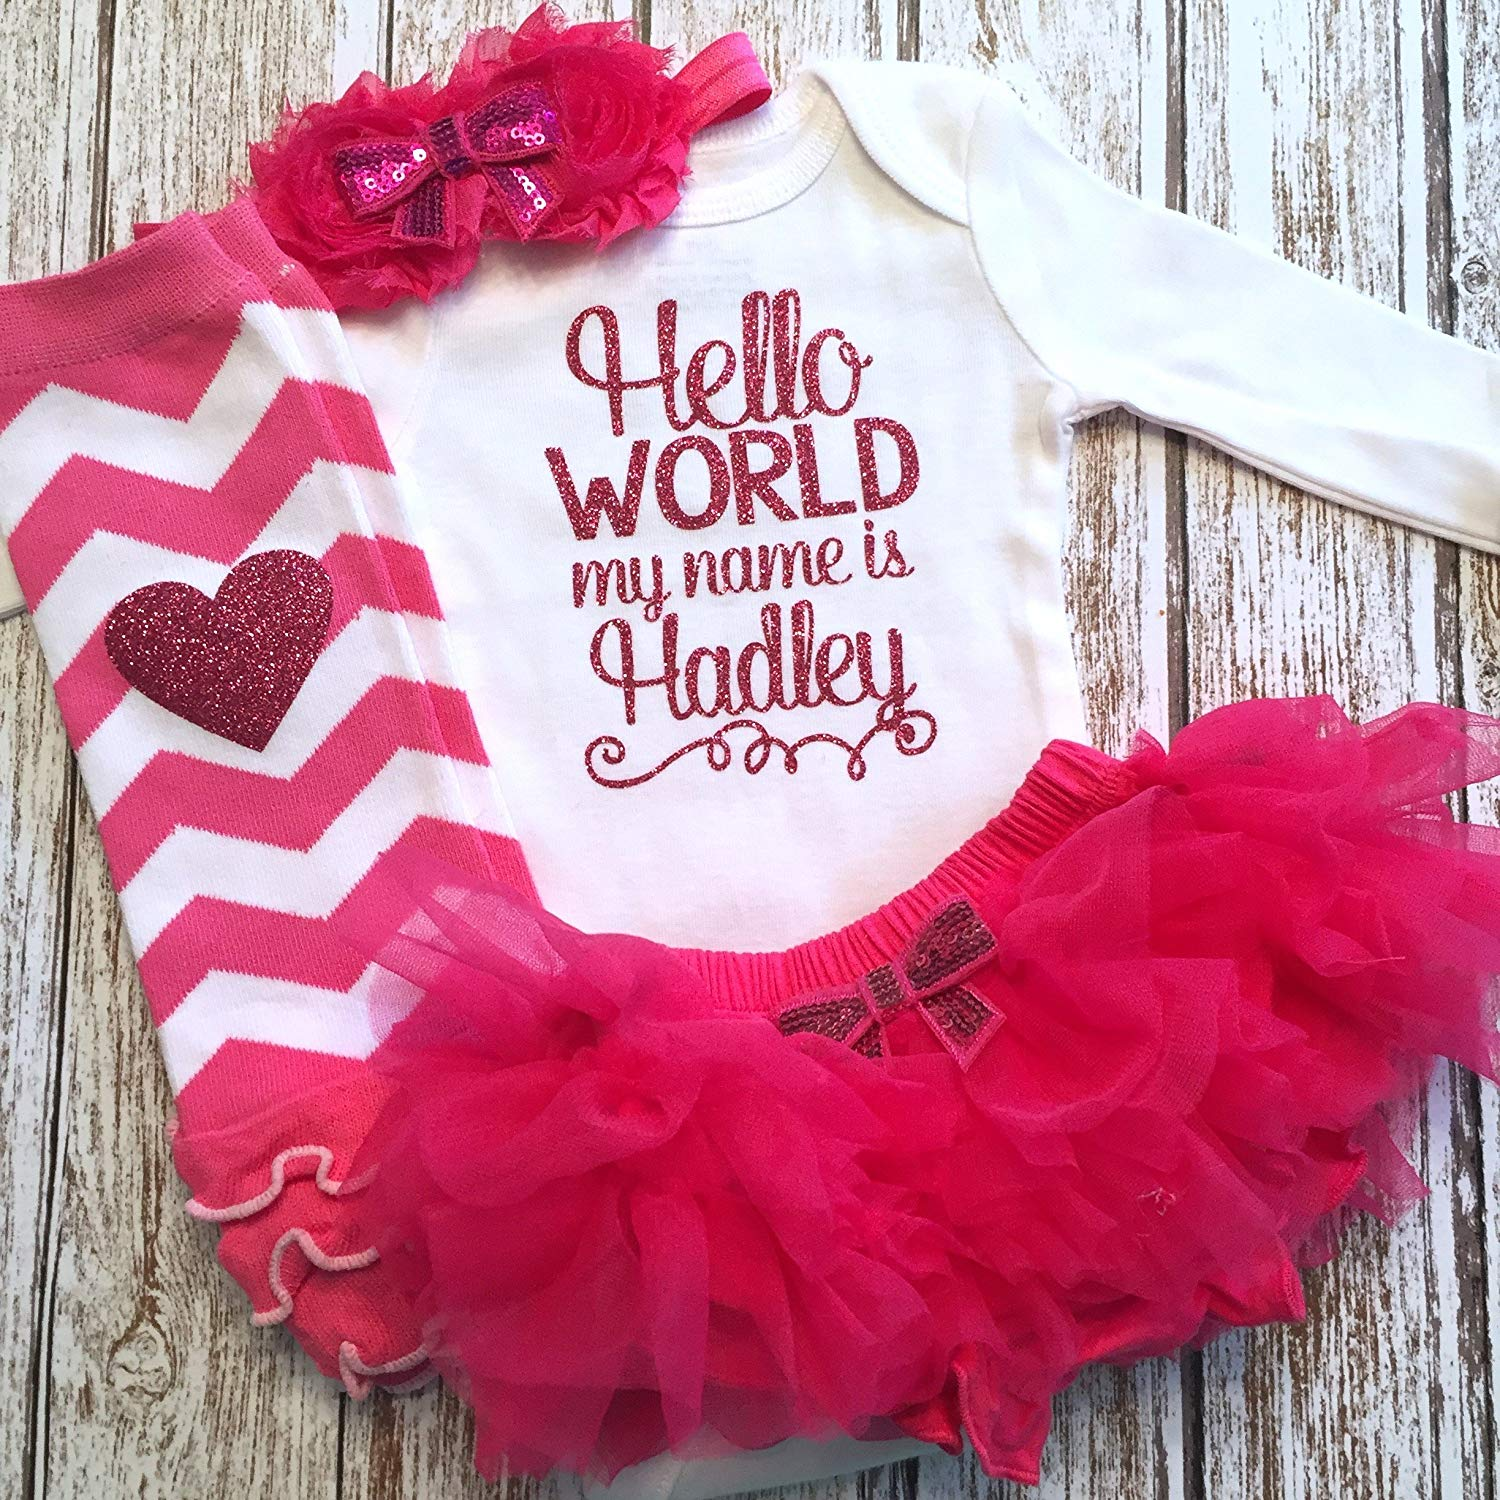 Personalized Baby Girl Outfit Watermelon Party Baby Shower Gift Pink and Lime Optional Tutu Bloomers Headband and Leg Warmers